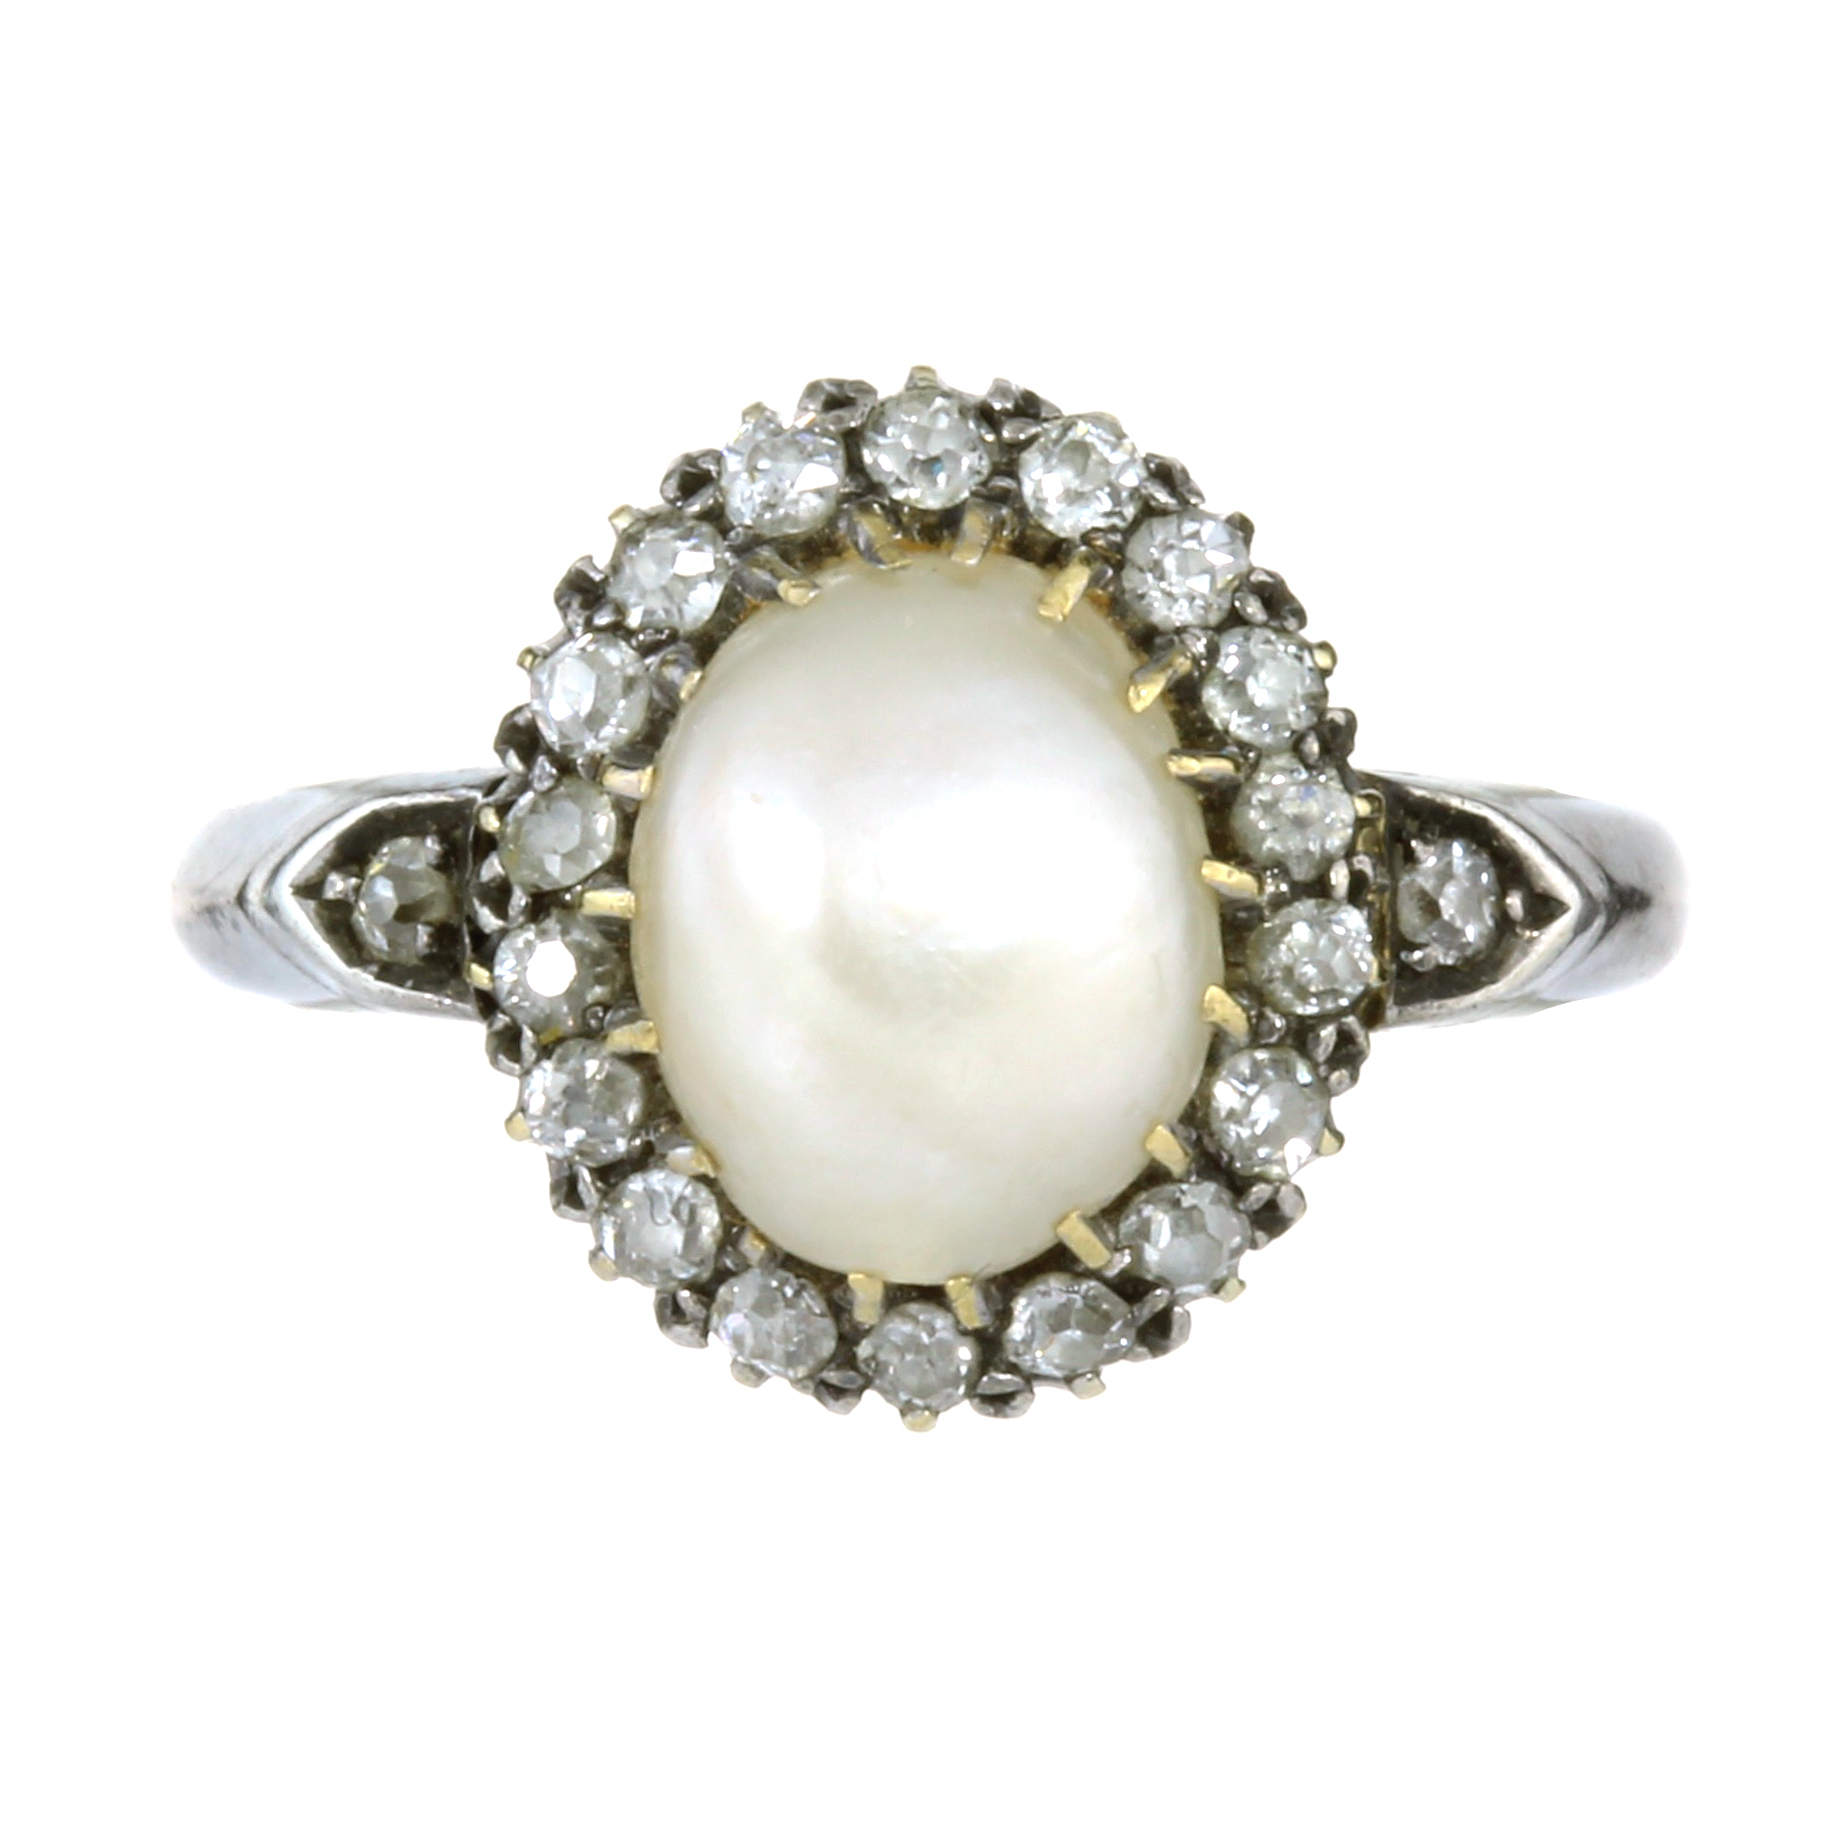 Los 40 - AN ANTIQUE NATURAL SALTWATER PEARL AND DIAMOND CLUSTER RING in yellow and white gold, set with a